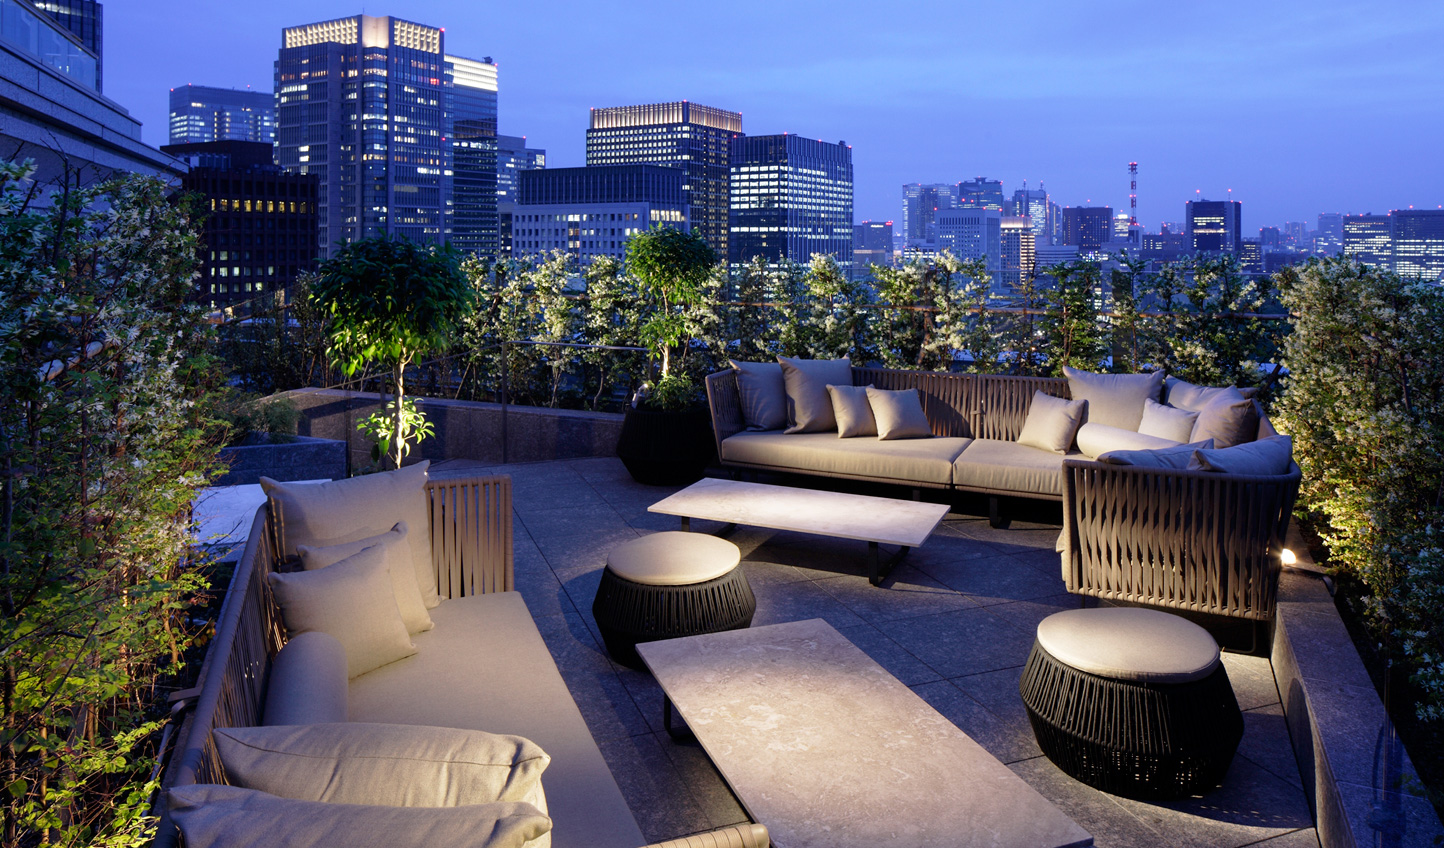 Head up the the Club Lounge terrace for a drink in privacy with some unbeatable city views